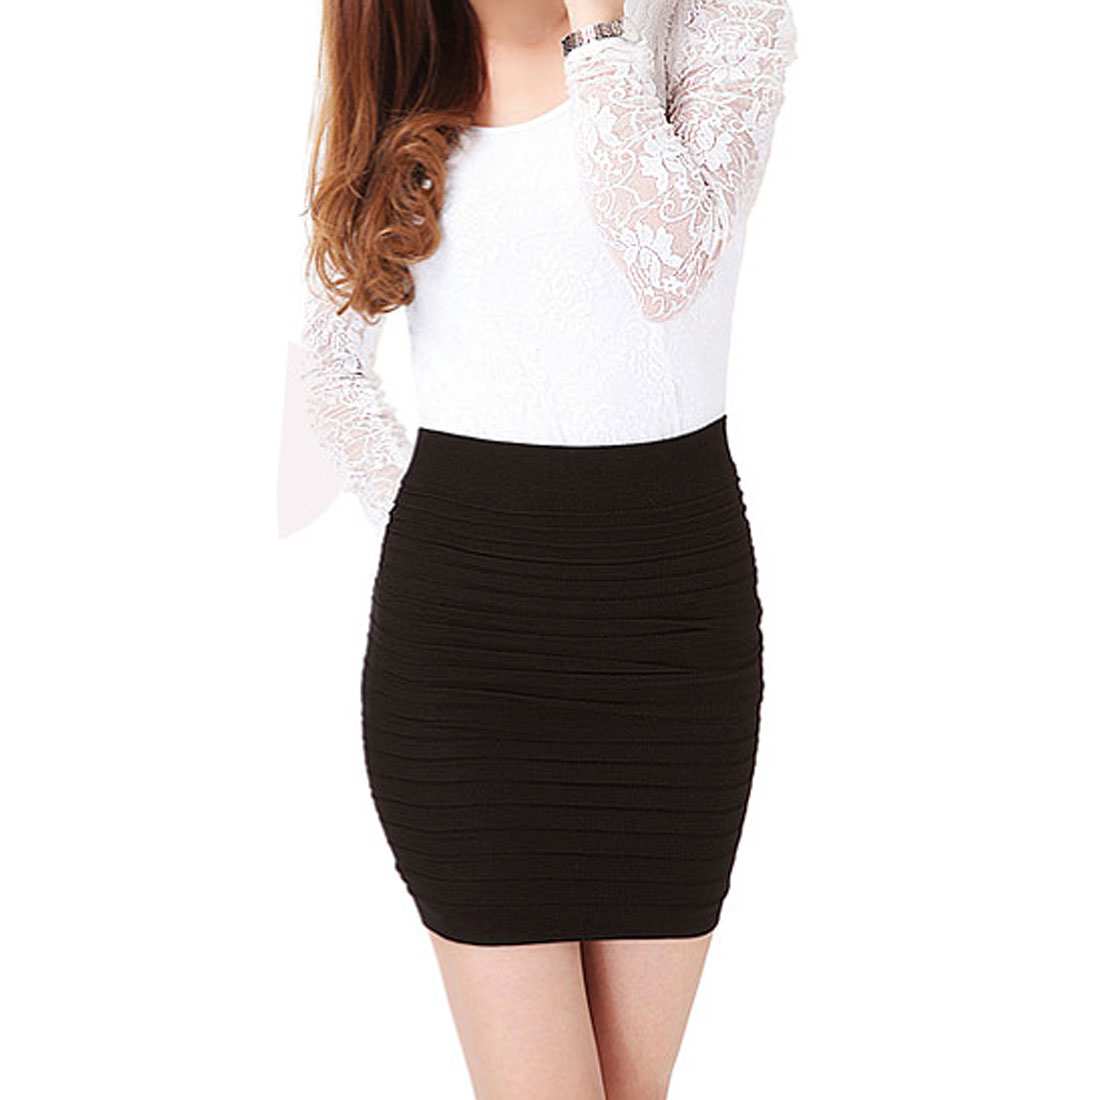 Women Solid Coffee Color Layered Design Stretchy Mini Skirt XS